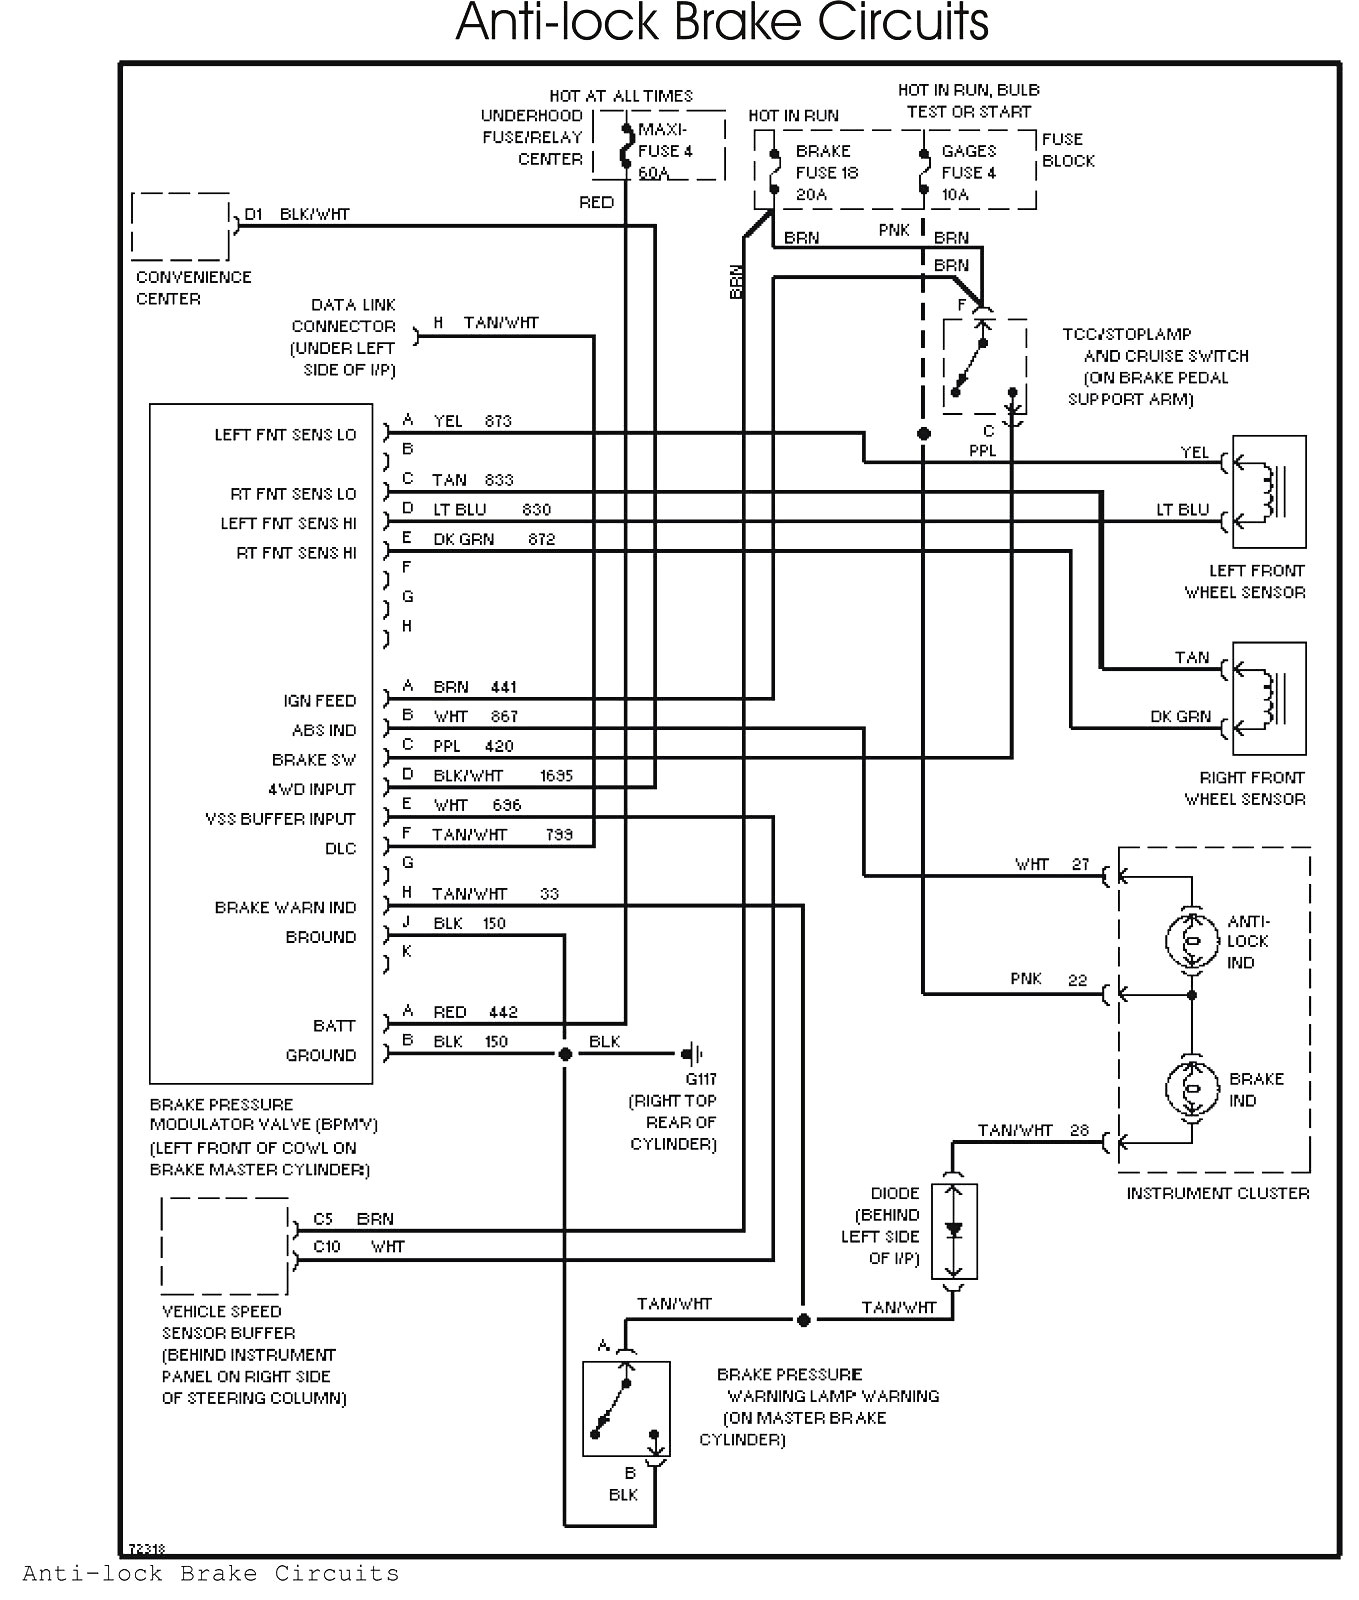 curt discovery brake controller wiring diagram Download-Wiring Diagram Tekonsha Prodigy P3 Trailer Brake Controller New Jaguar Incredible P2 For Hayman Reese And 12-m